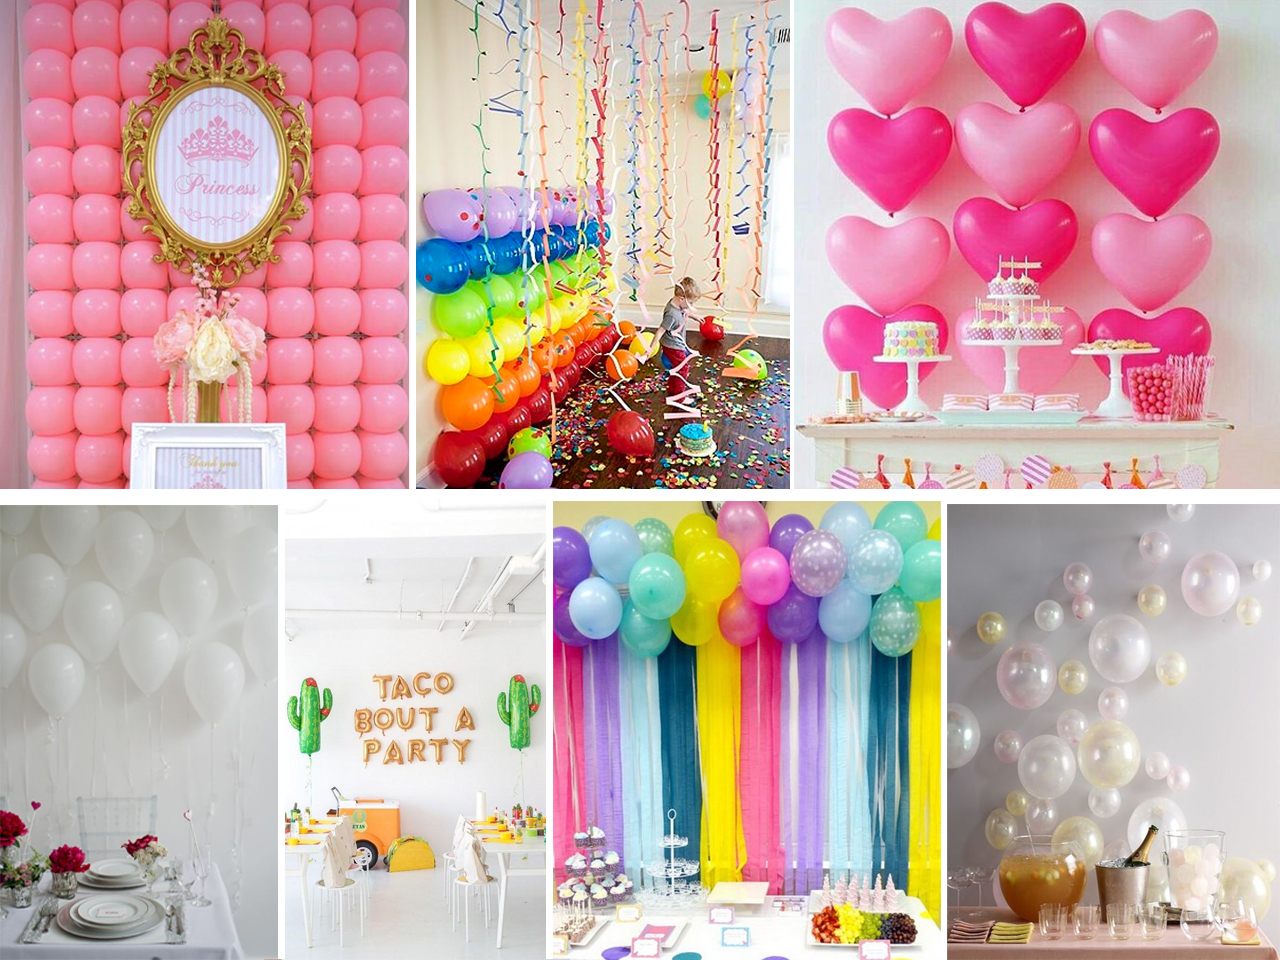 Descubre c mo decorar con globos con estas fant sticas ideas for Imagenes para decorar paredes